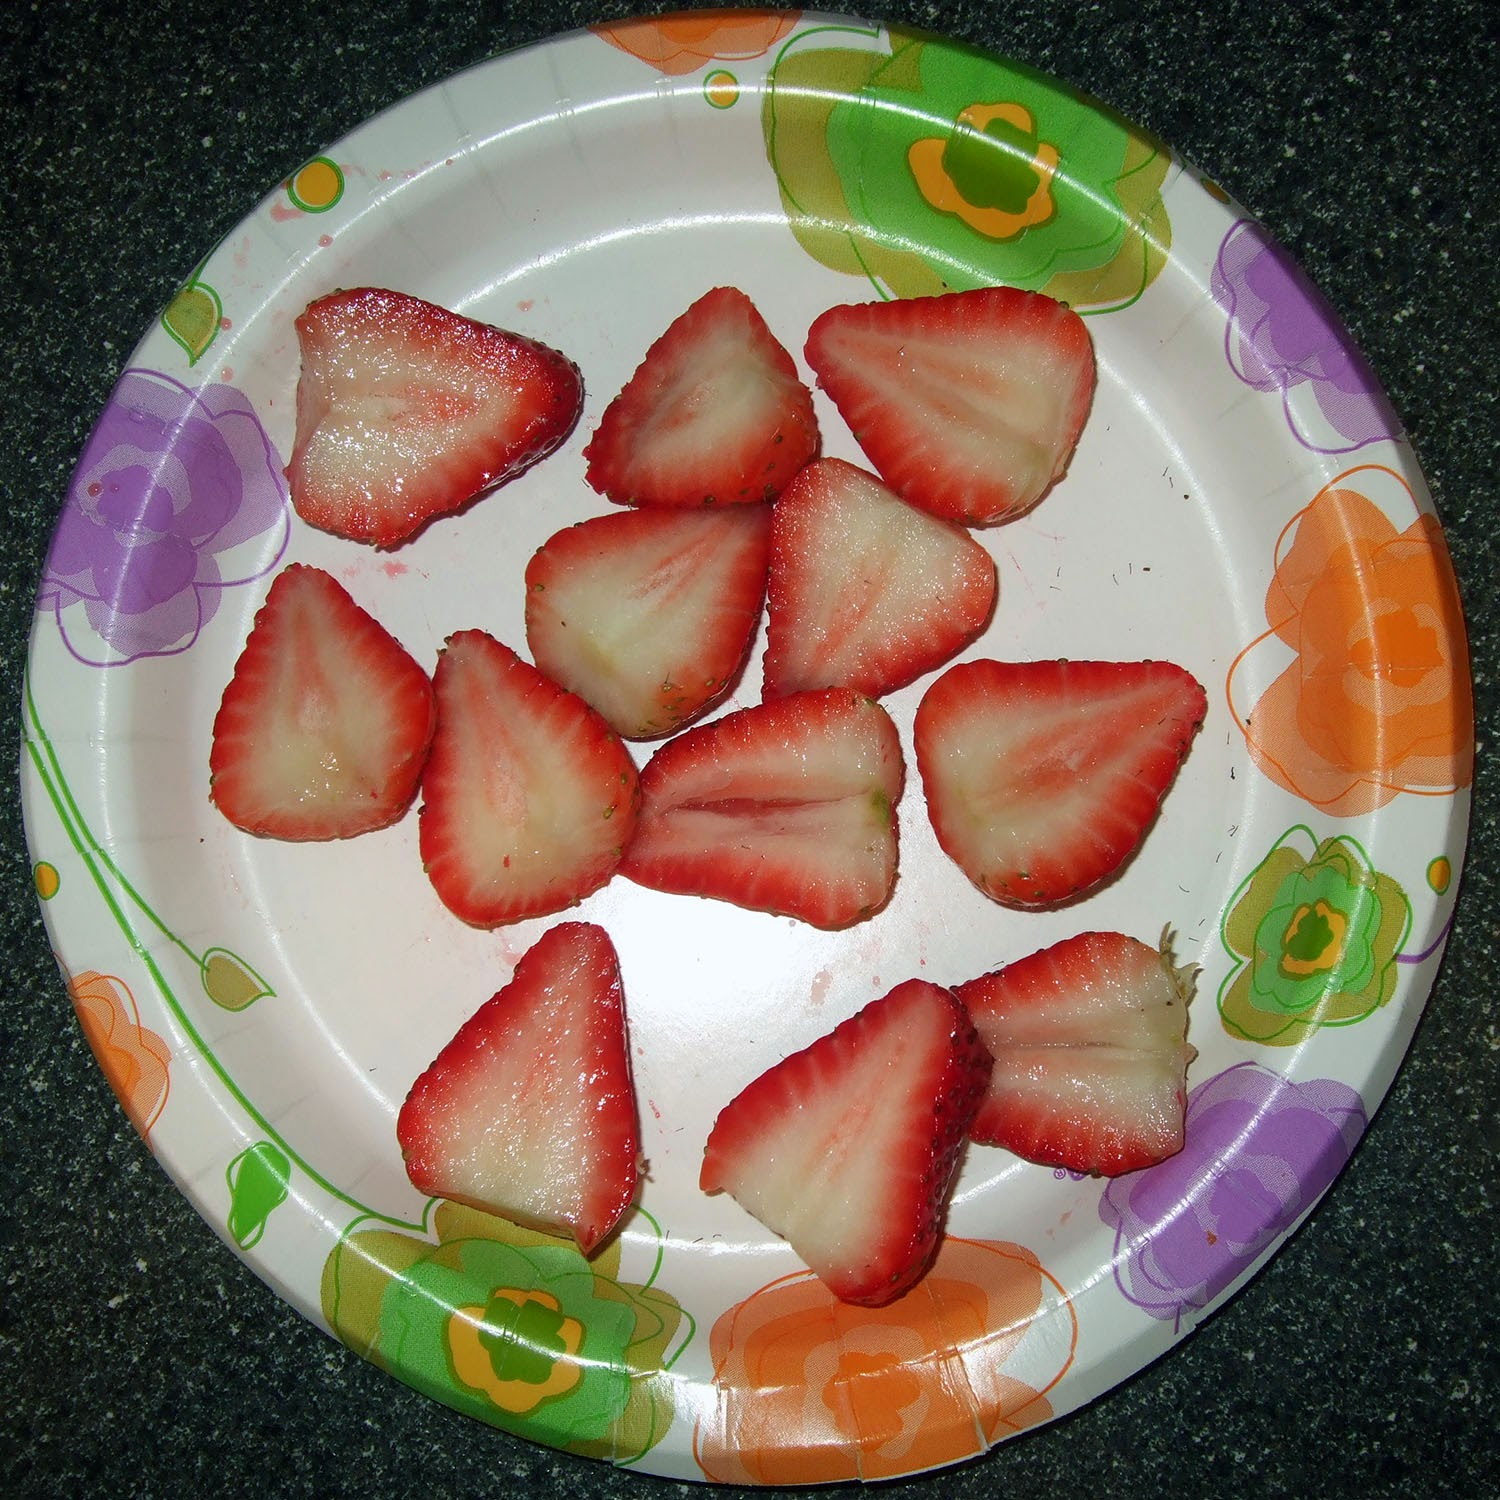 Hulled strawberries.